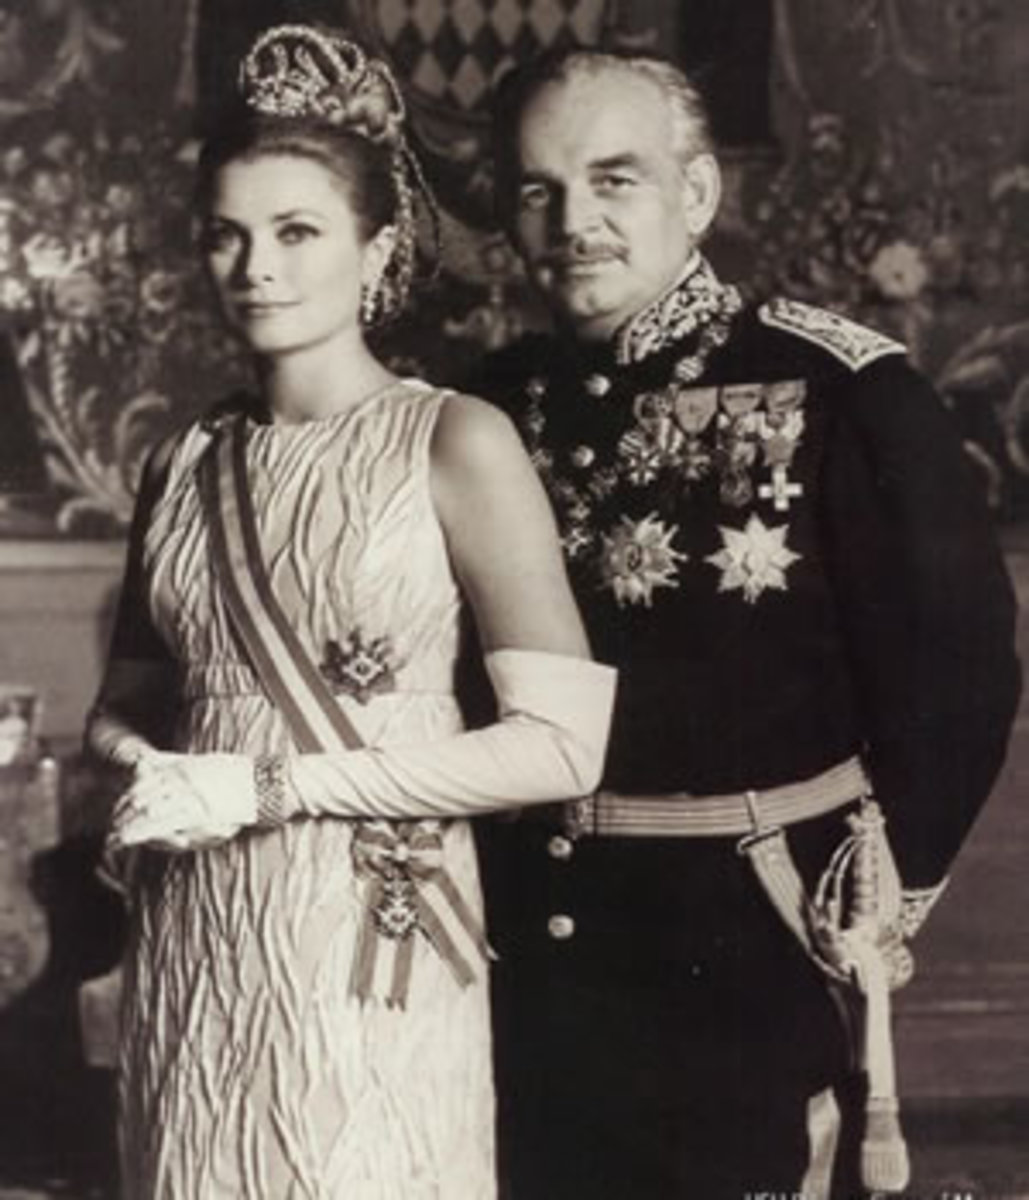 Princess Grace gave up acting to fulfill her official duties.